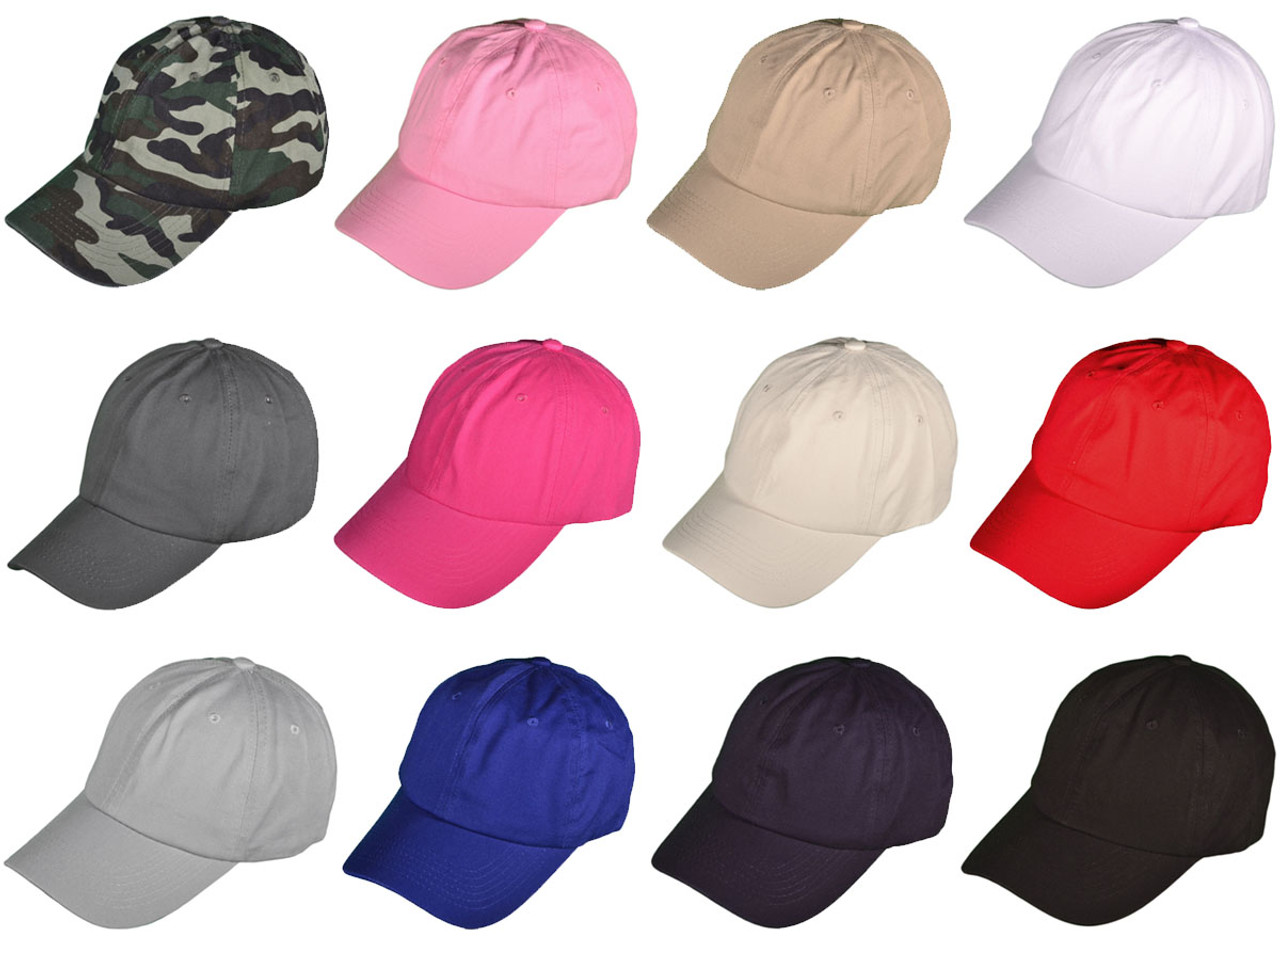 28974898 *Dozen Pack* Blank Dad Hats Polo Baseball Unstructured Cotton With ...